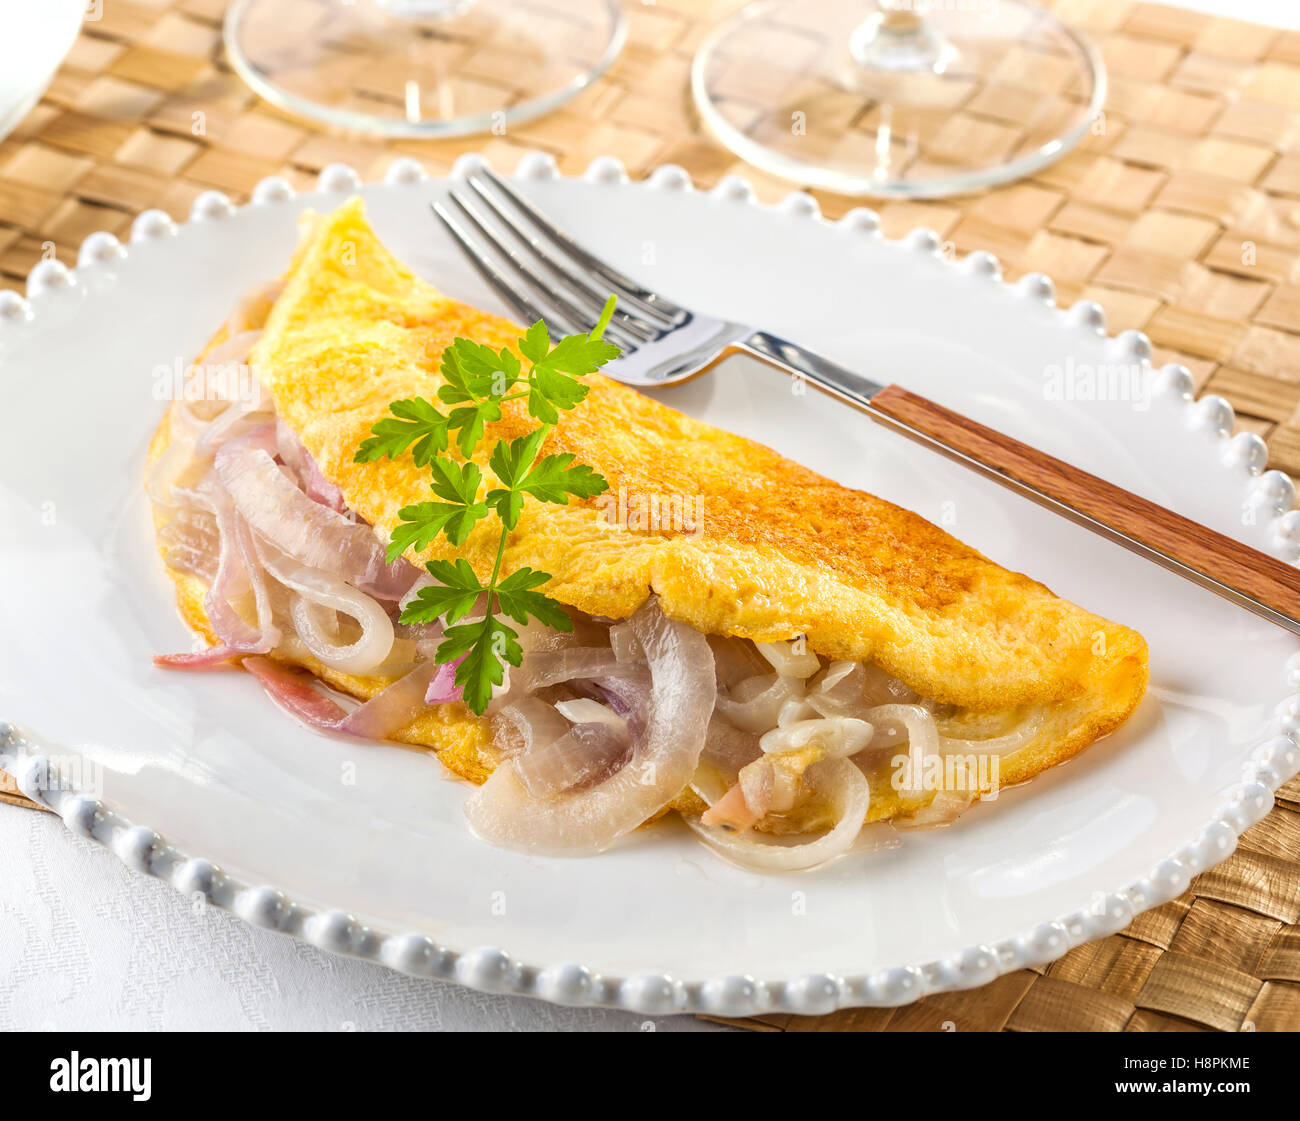 Delicious egg omelet filled with fried onions on a plate. Breakfast or brunch. - Stock Image